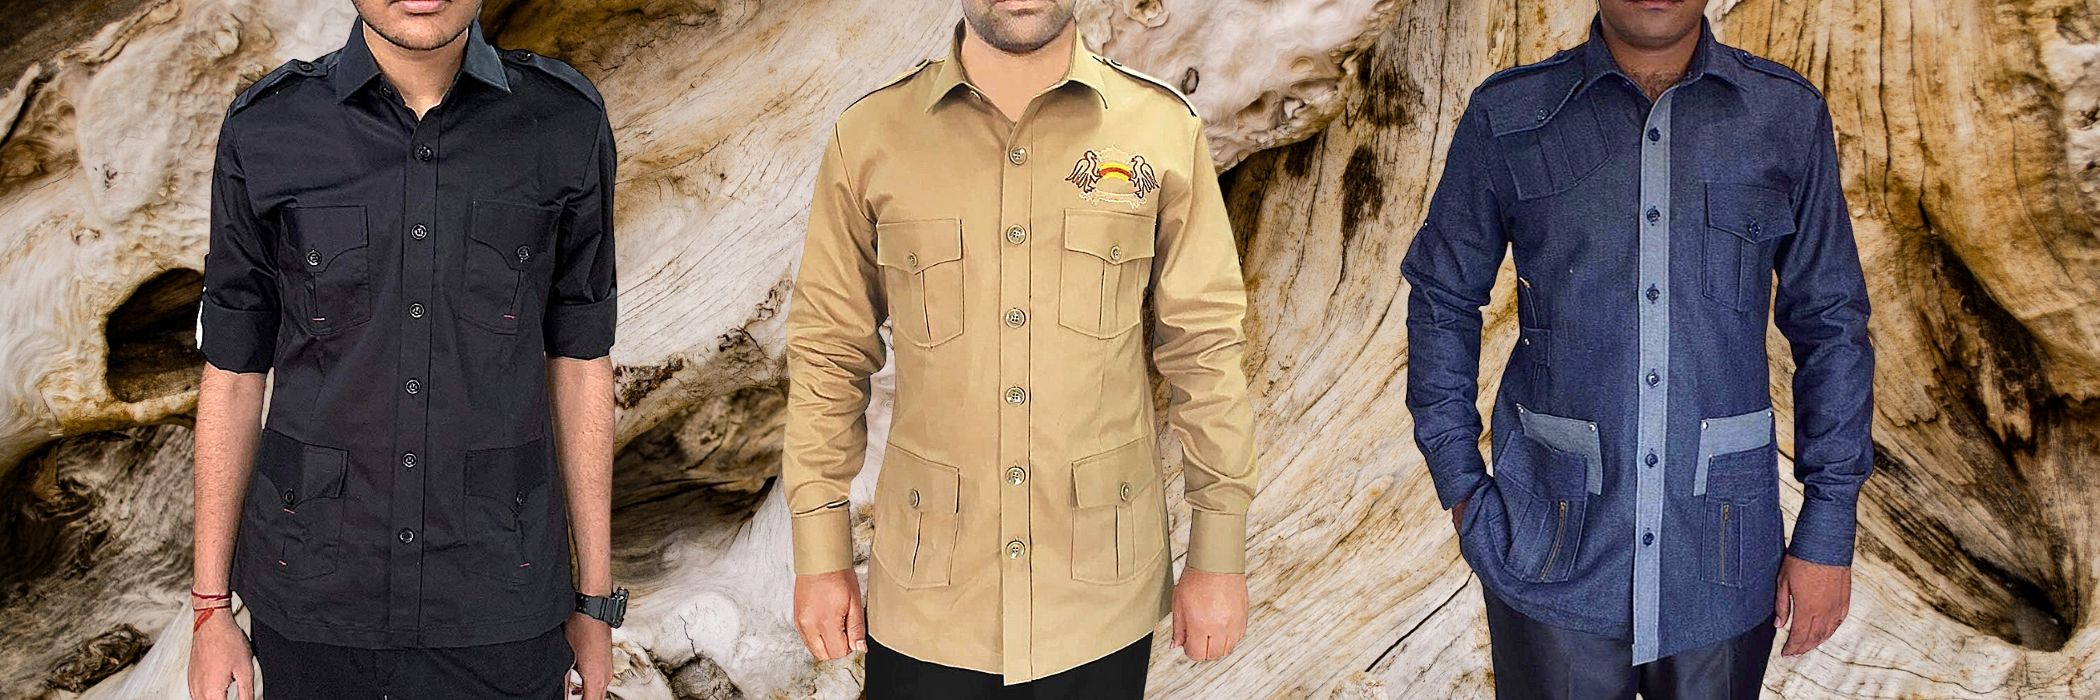 SAFARI HUNTING SHIRTS FOR MEN